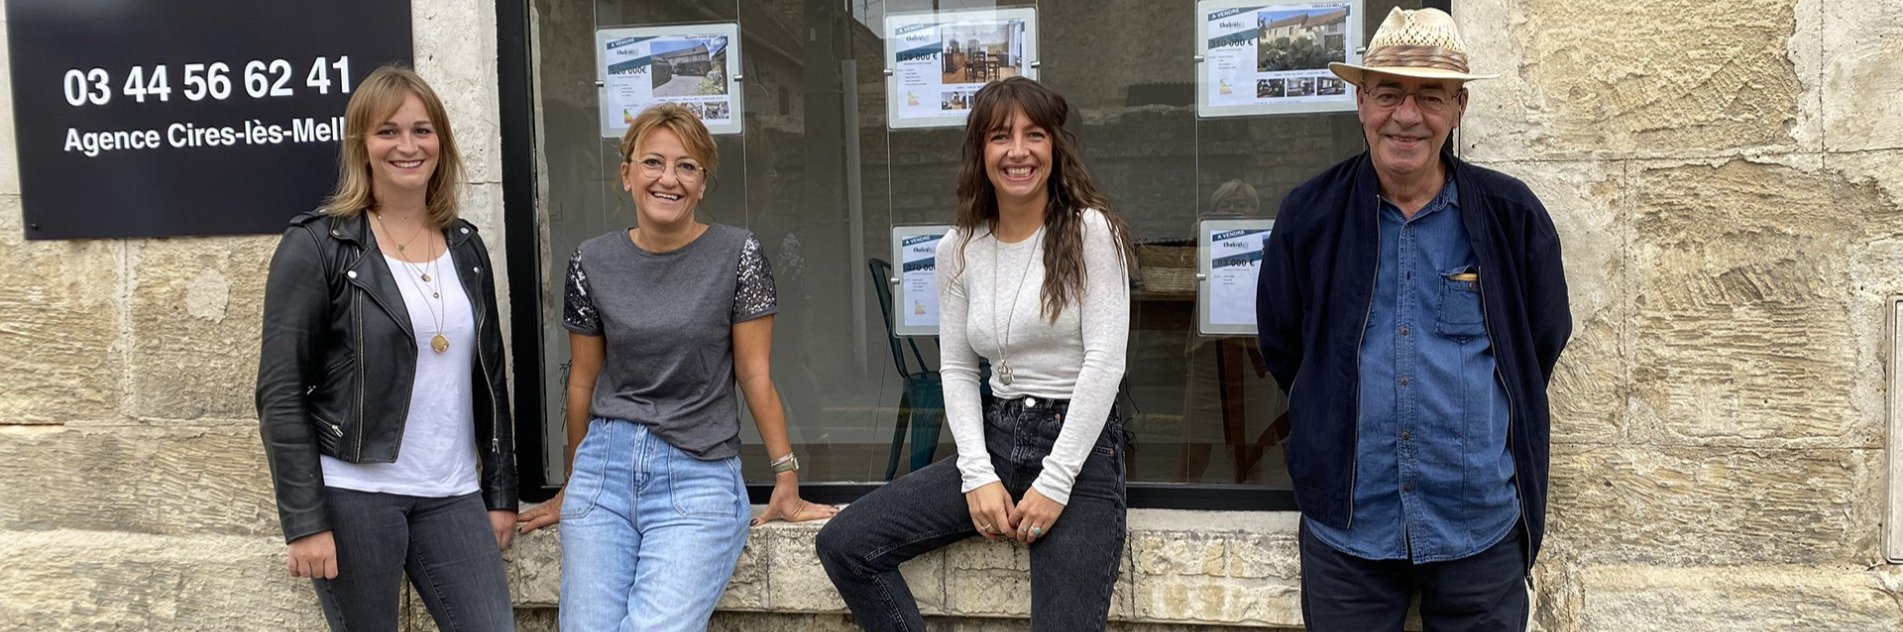 Agence immobilière Chabrol Immobilier Cires-lès-Mello